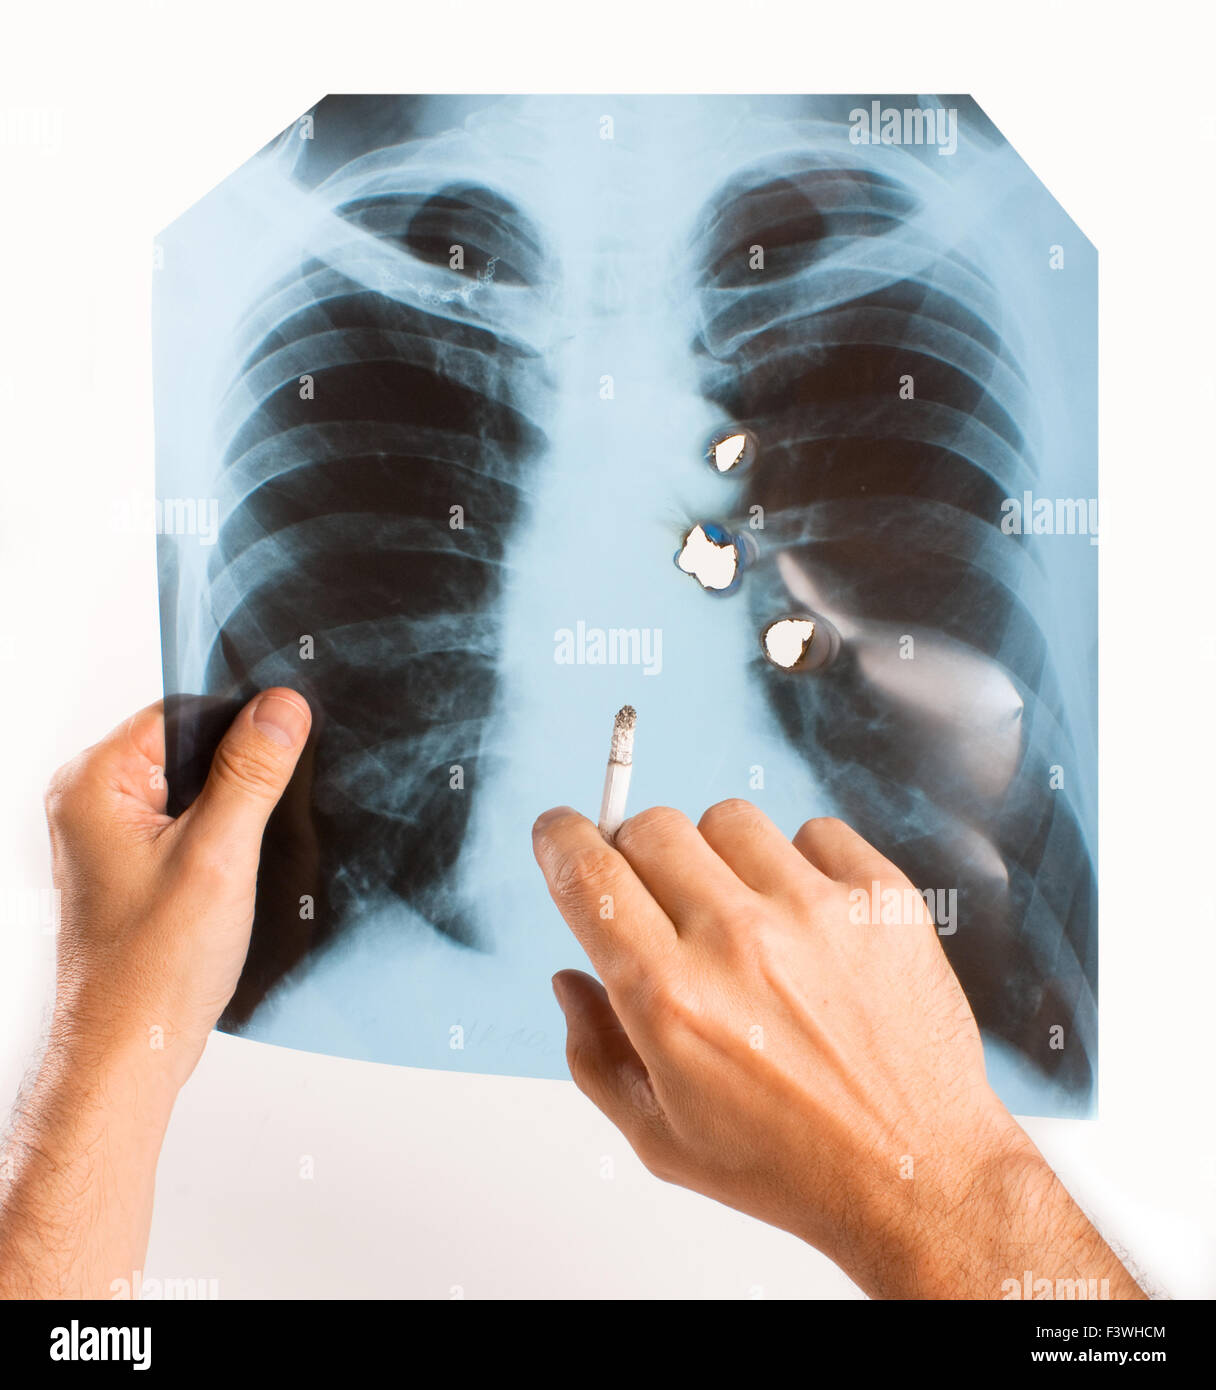 X-ray lung - Stock Image